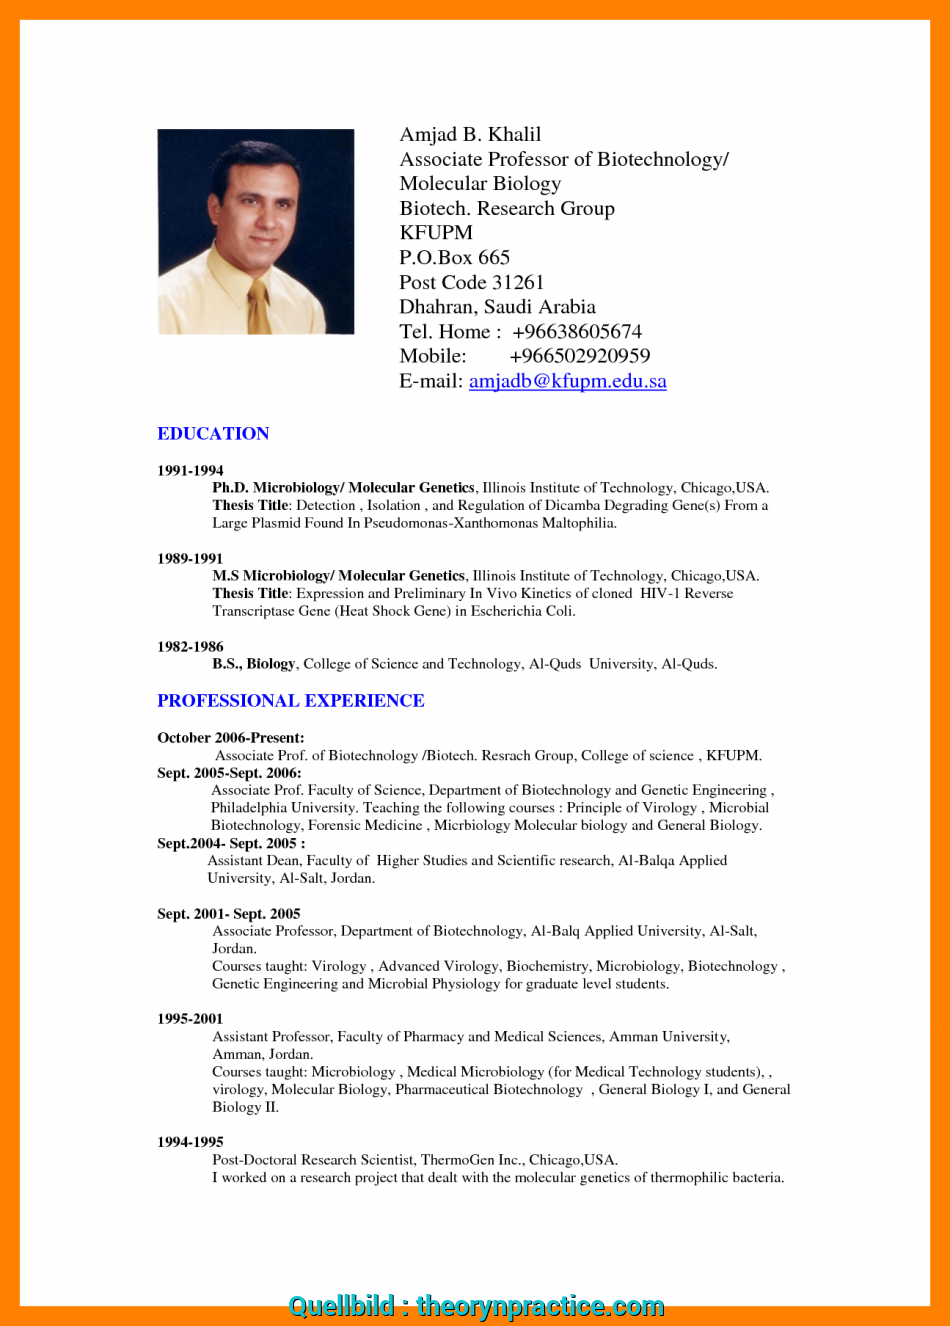 Oben Cv In English Example, .Form-For-Cv-In-English-Cv-Template-Doc -F4K407O1.Png, Cv English Example Doc